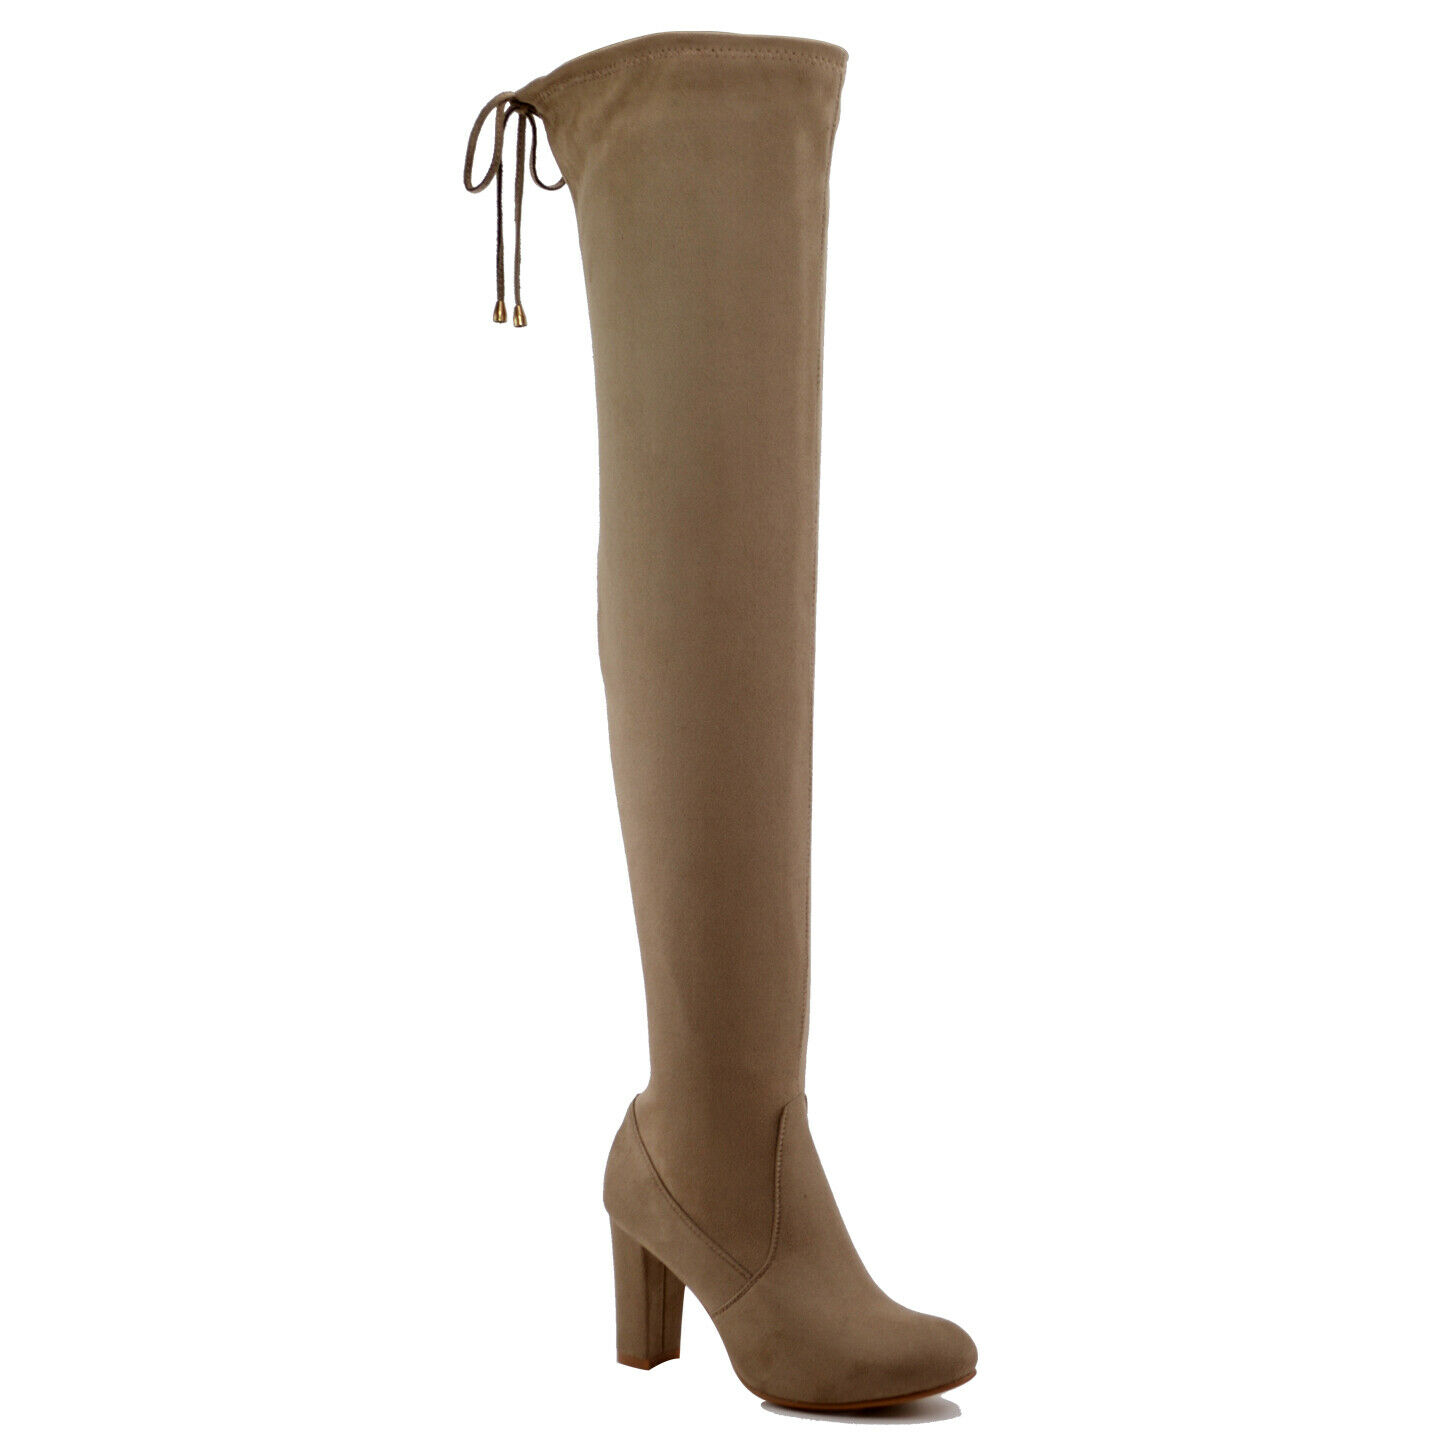 New Women Size 8.5 Taupe Over The Knee Thigh High Stretch Block Heel Boots - $14.89